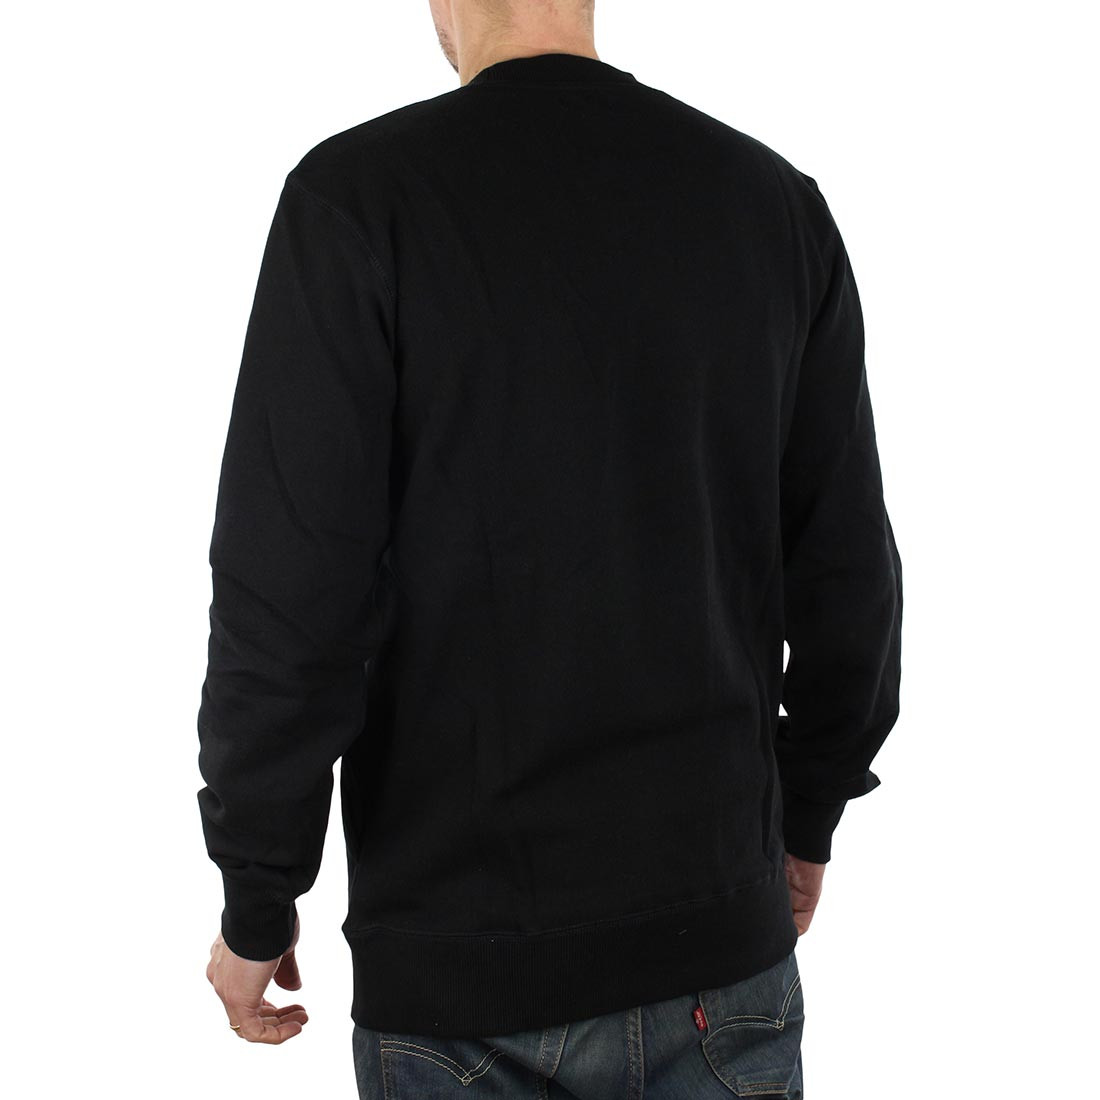 Inspirational Dc Shoes Skate Circle Crew Neck Sweater Black 03 Circle Sweater Of Innovative 50 Ideas Circle Sweater